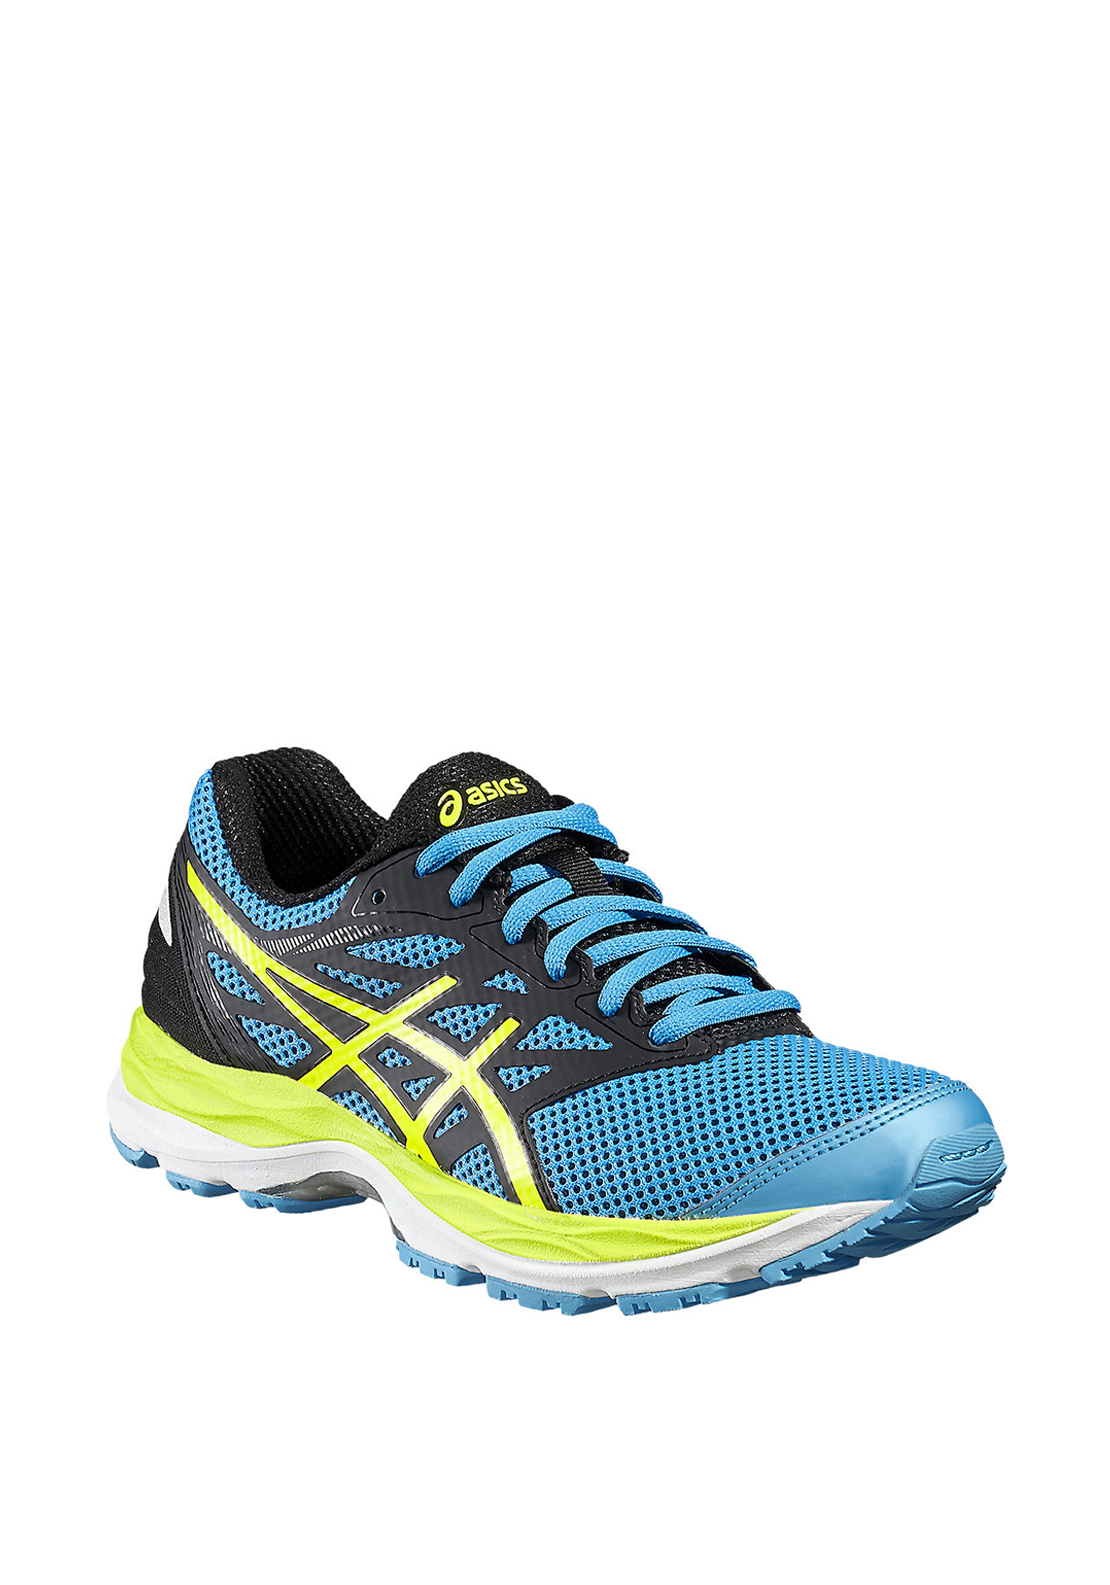 Asics Kids Gel Cumulus 18 Runners, Blue